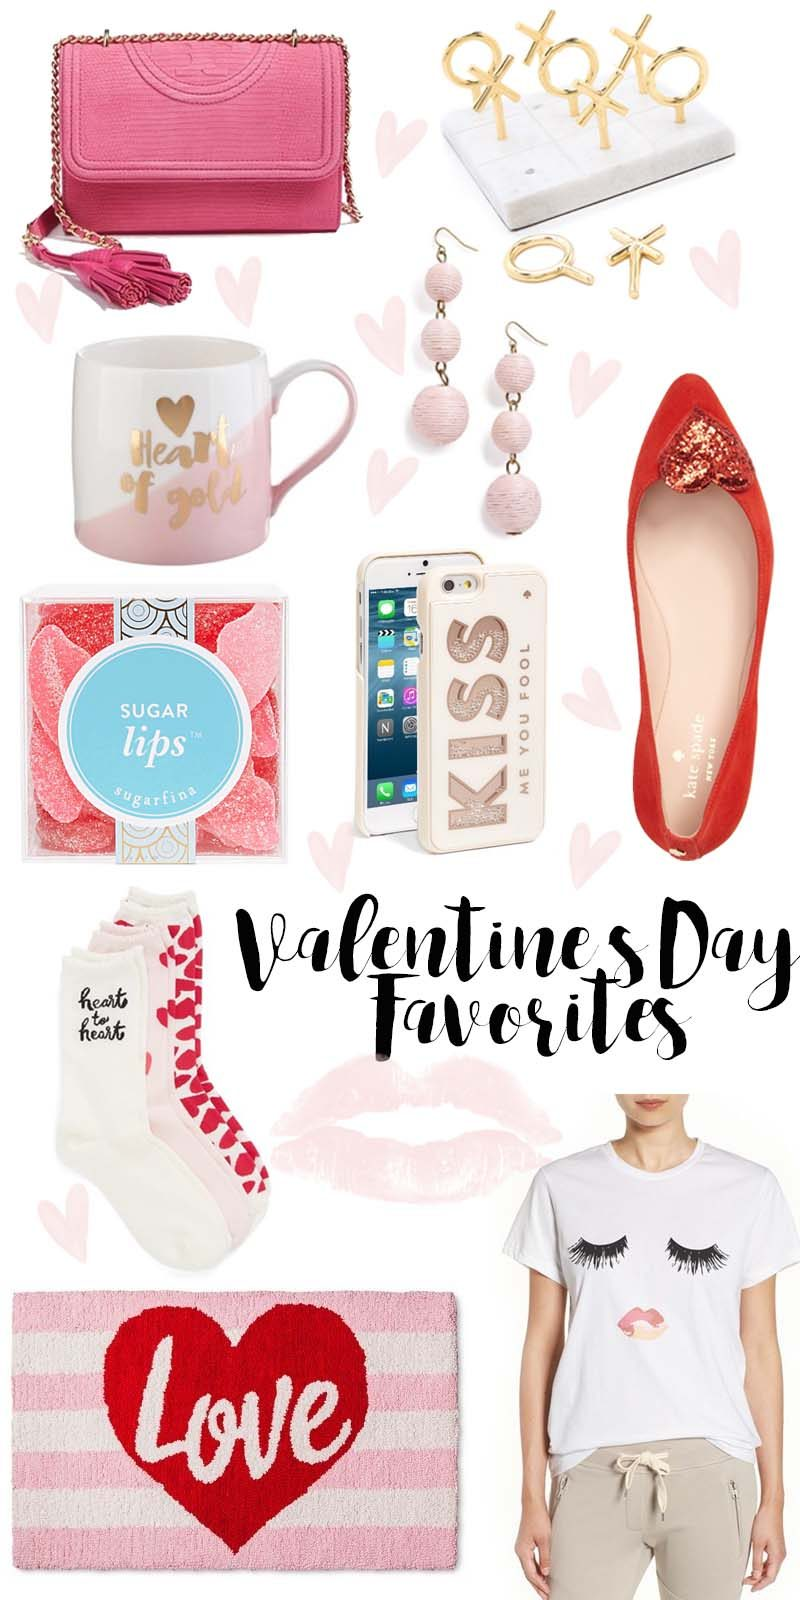 Miami fashion blogger Stephanie Pernas shares her Valentine's Day favorites in fashion and gifting